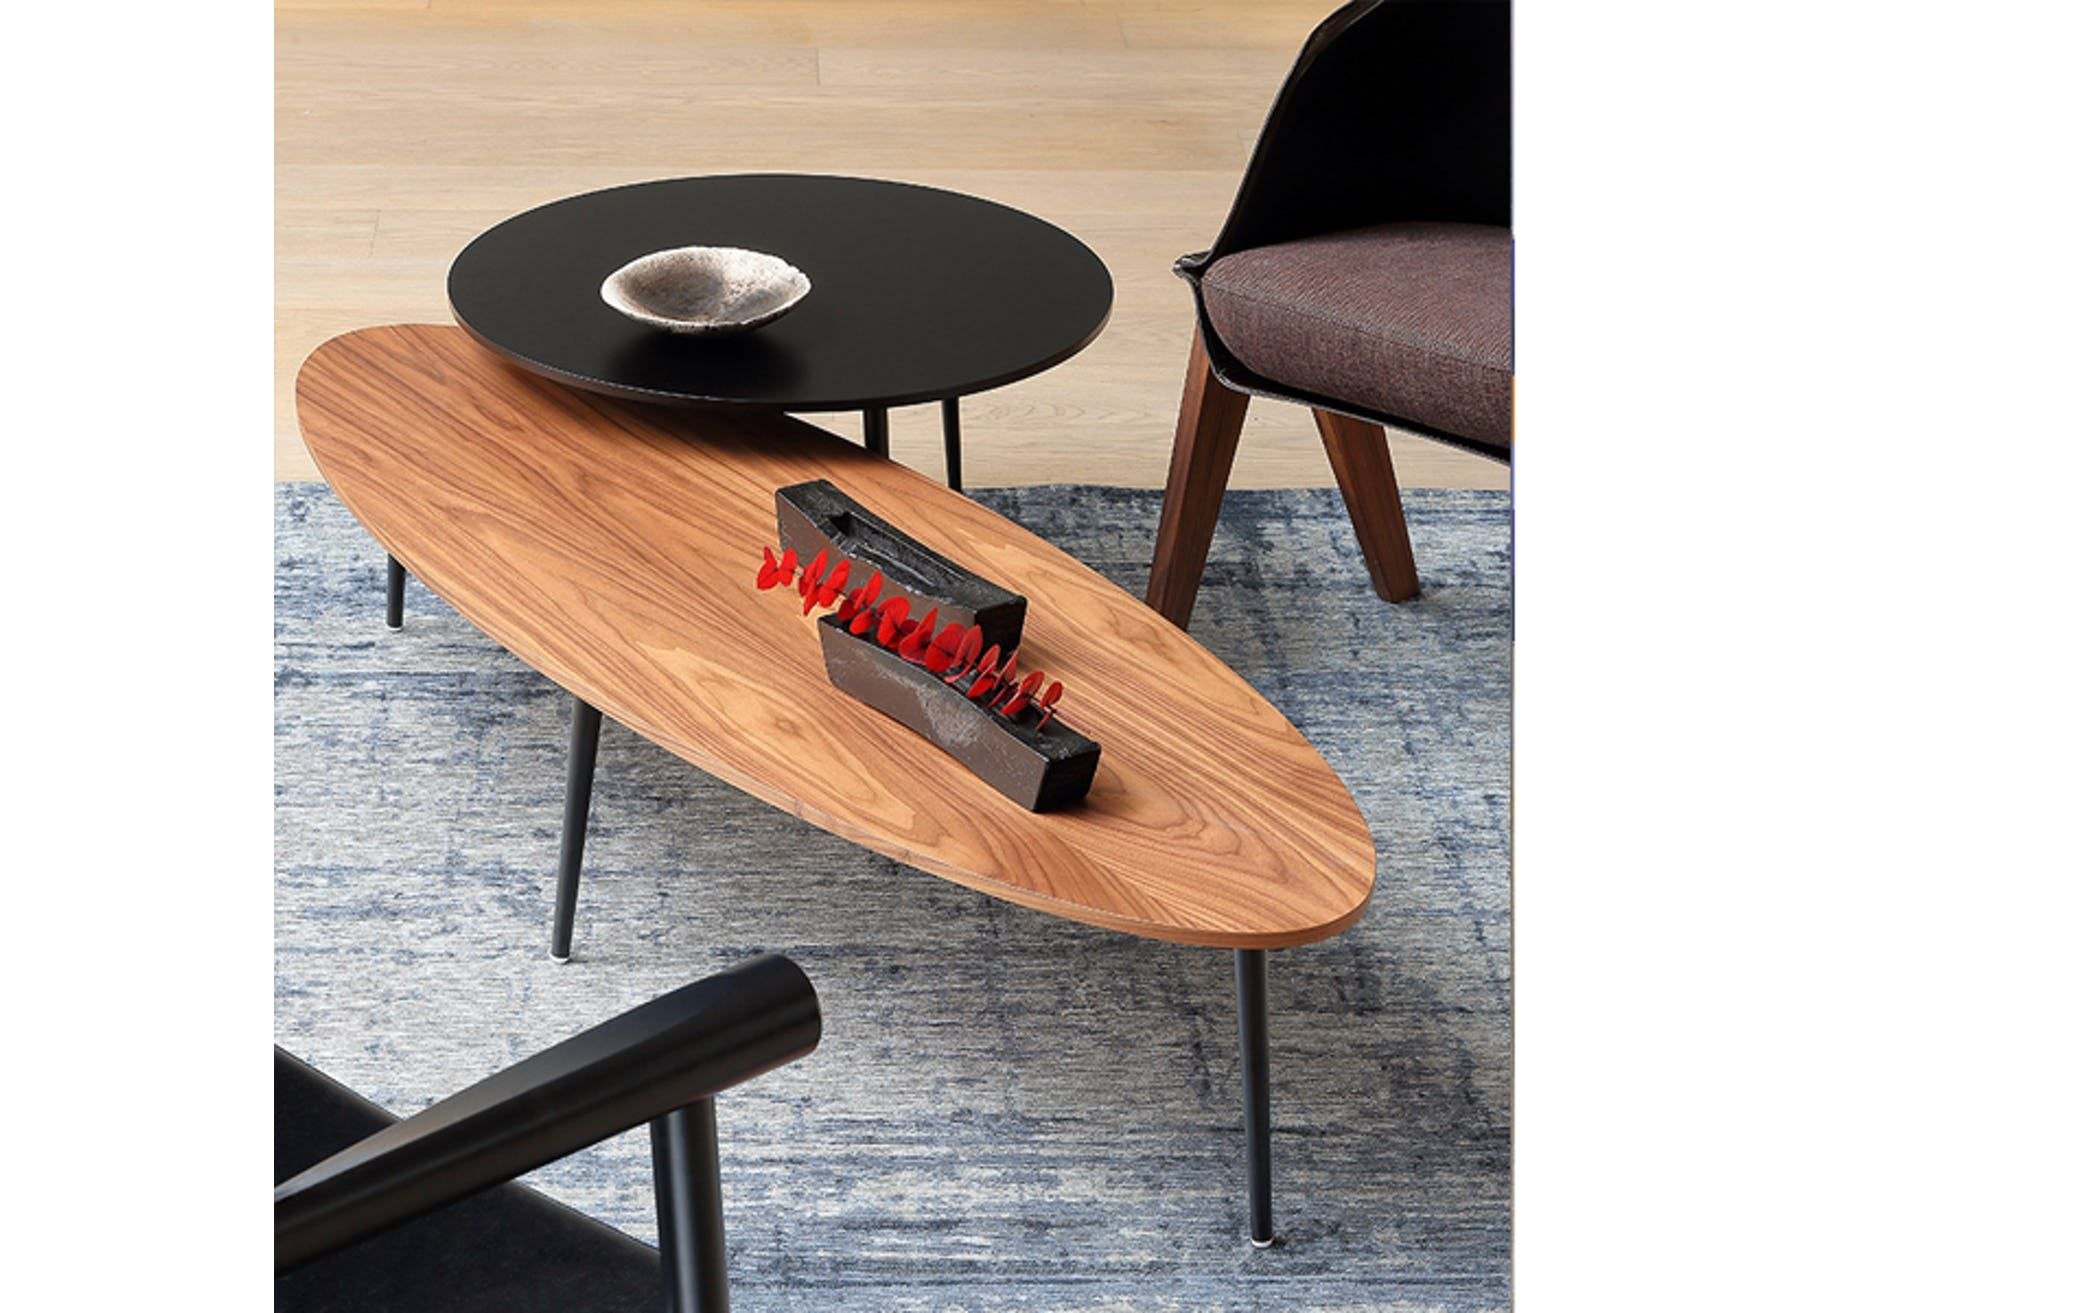 Soho Coffee Table By Coedition Now Available At Haute Living A Certified Dealer Of Coedition Furnitur Oval Coffee Tables Coffee Table Marble Top Coffee Table [ 1313 x 2100 Pixel ]